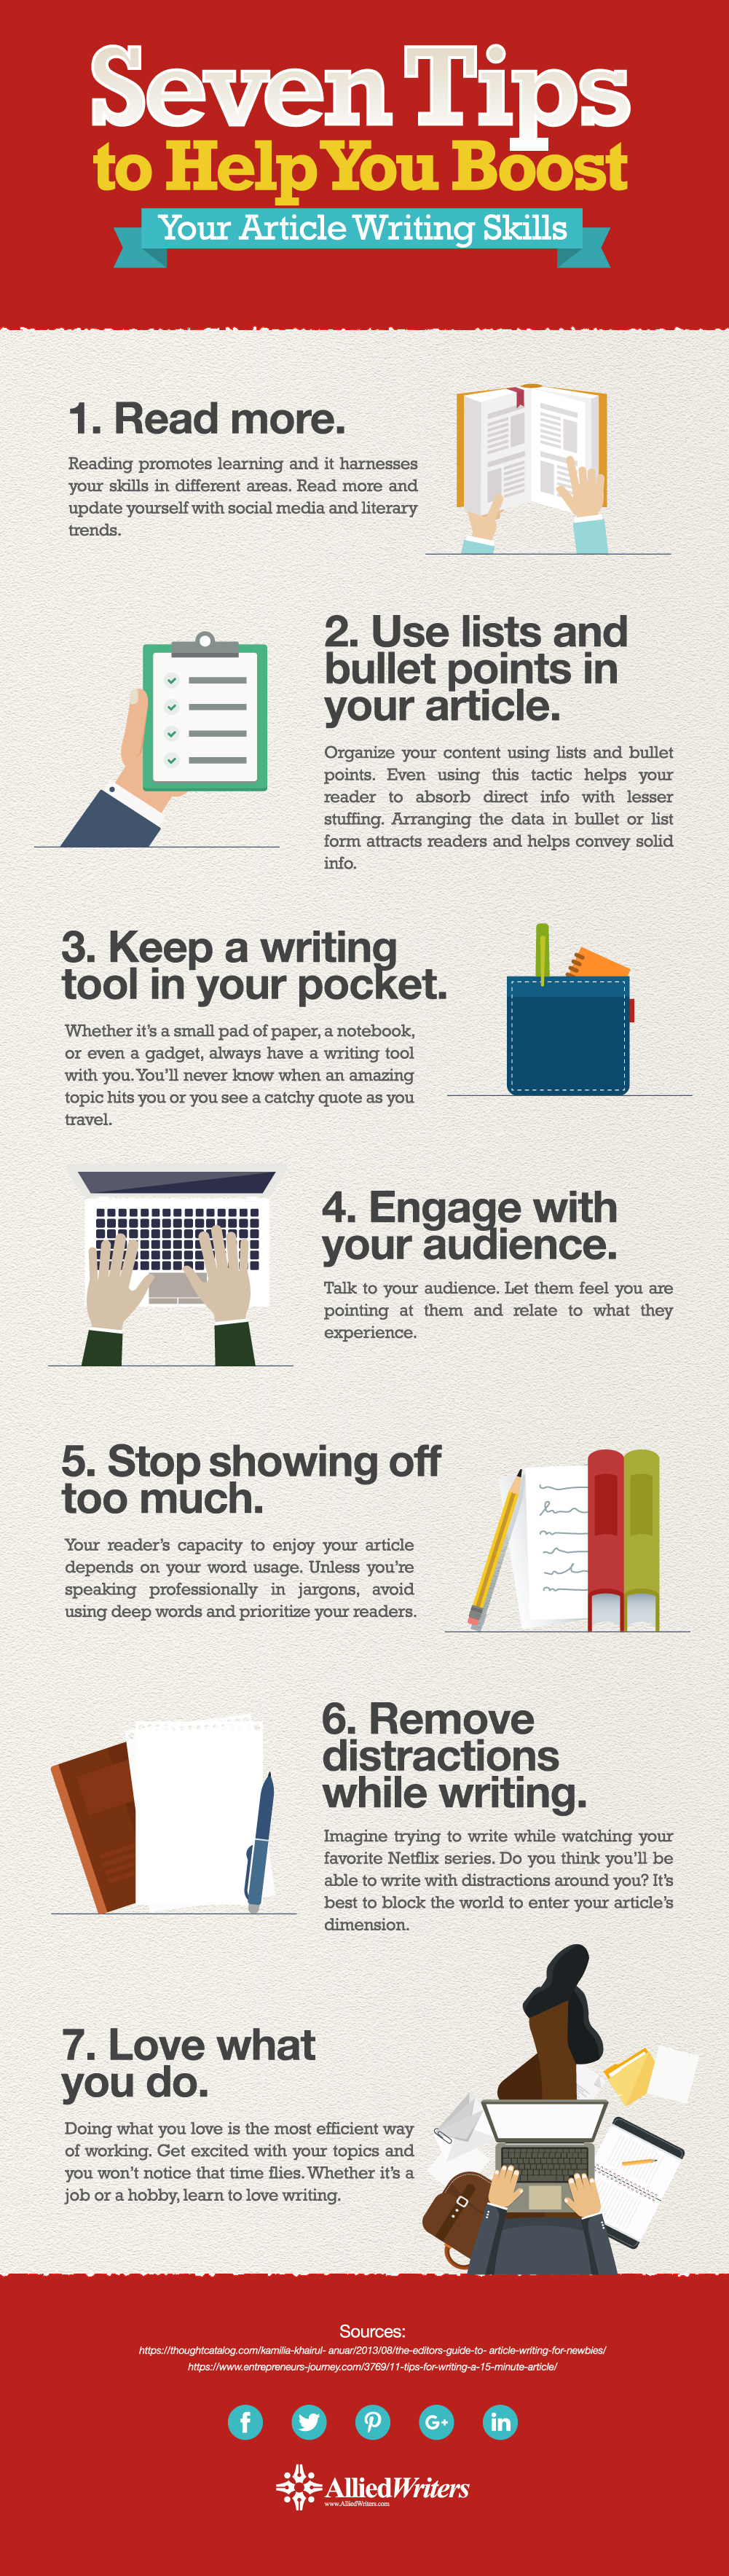 Seven Tips to Help You Boost Your Article Writing Infographic 01